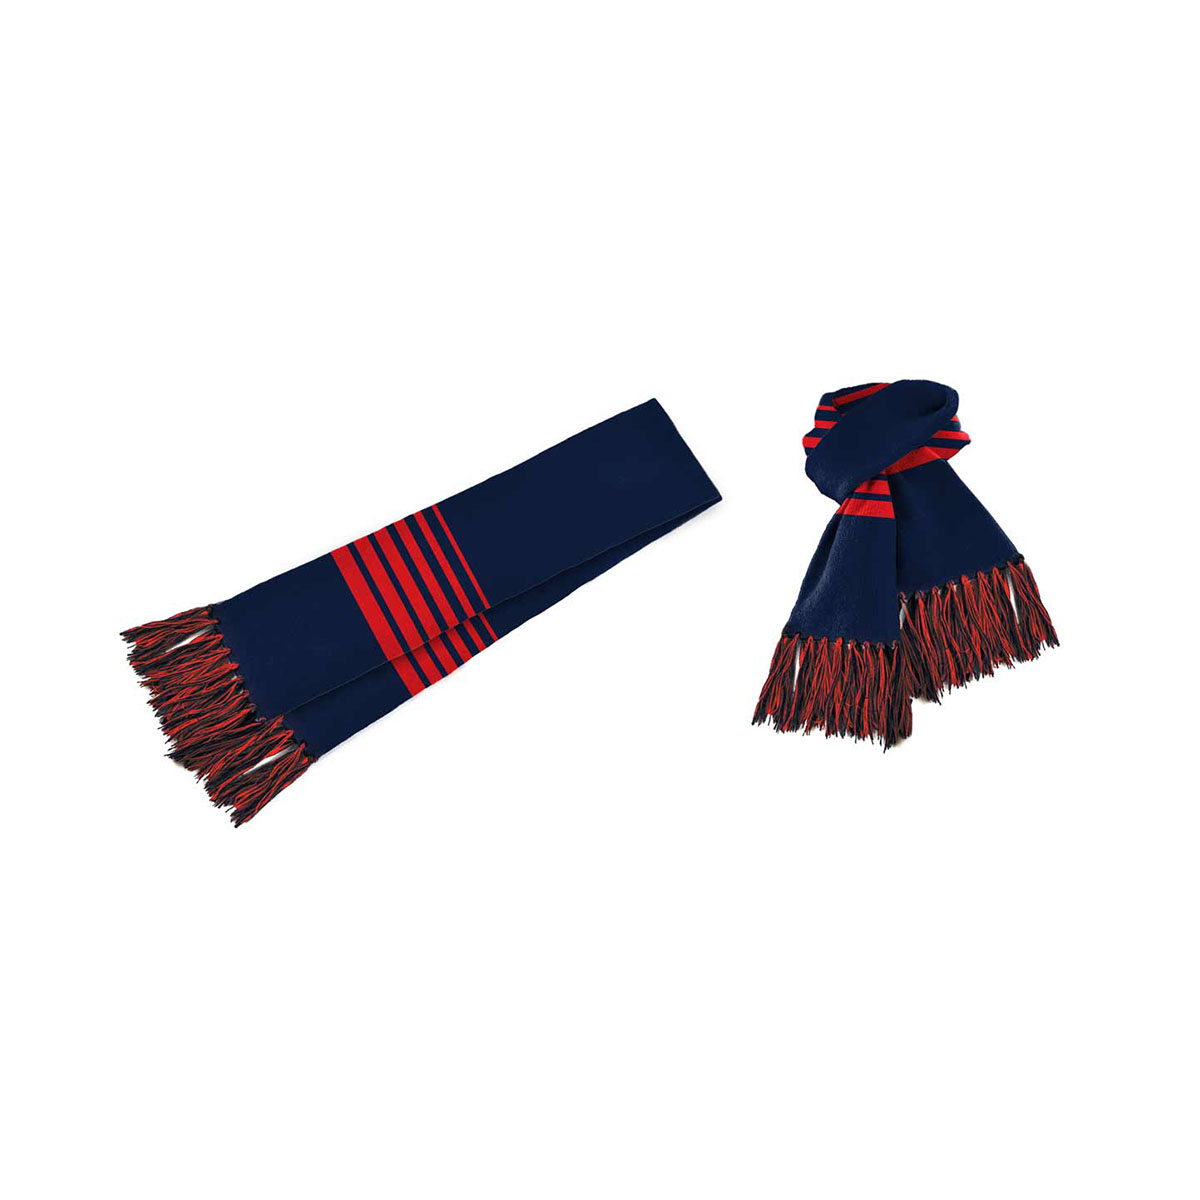 Acrylic Scarf-Navy / Red